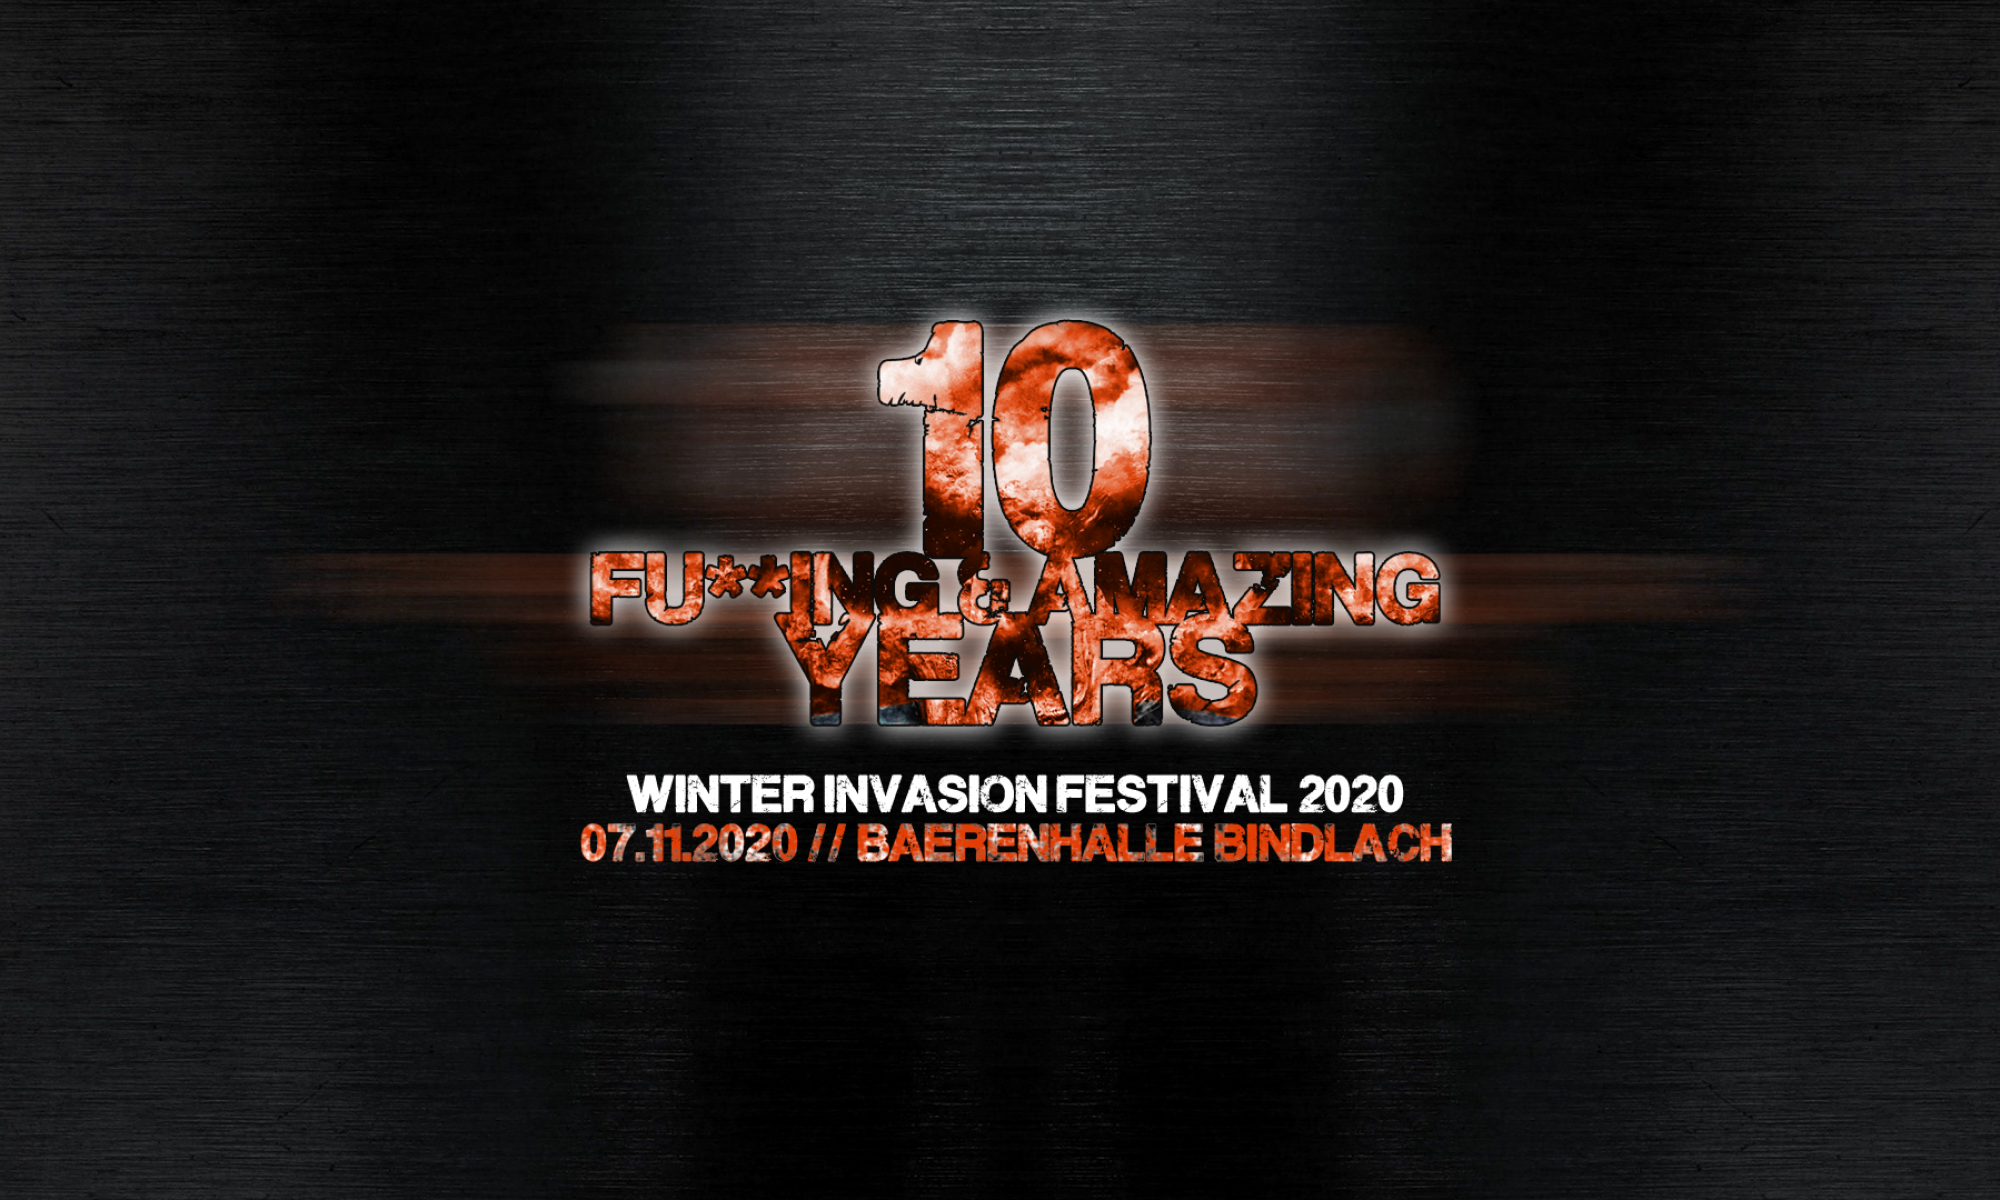 Winter Invasion Festival